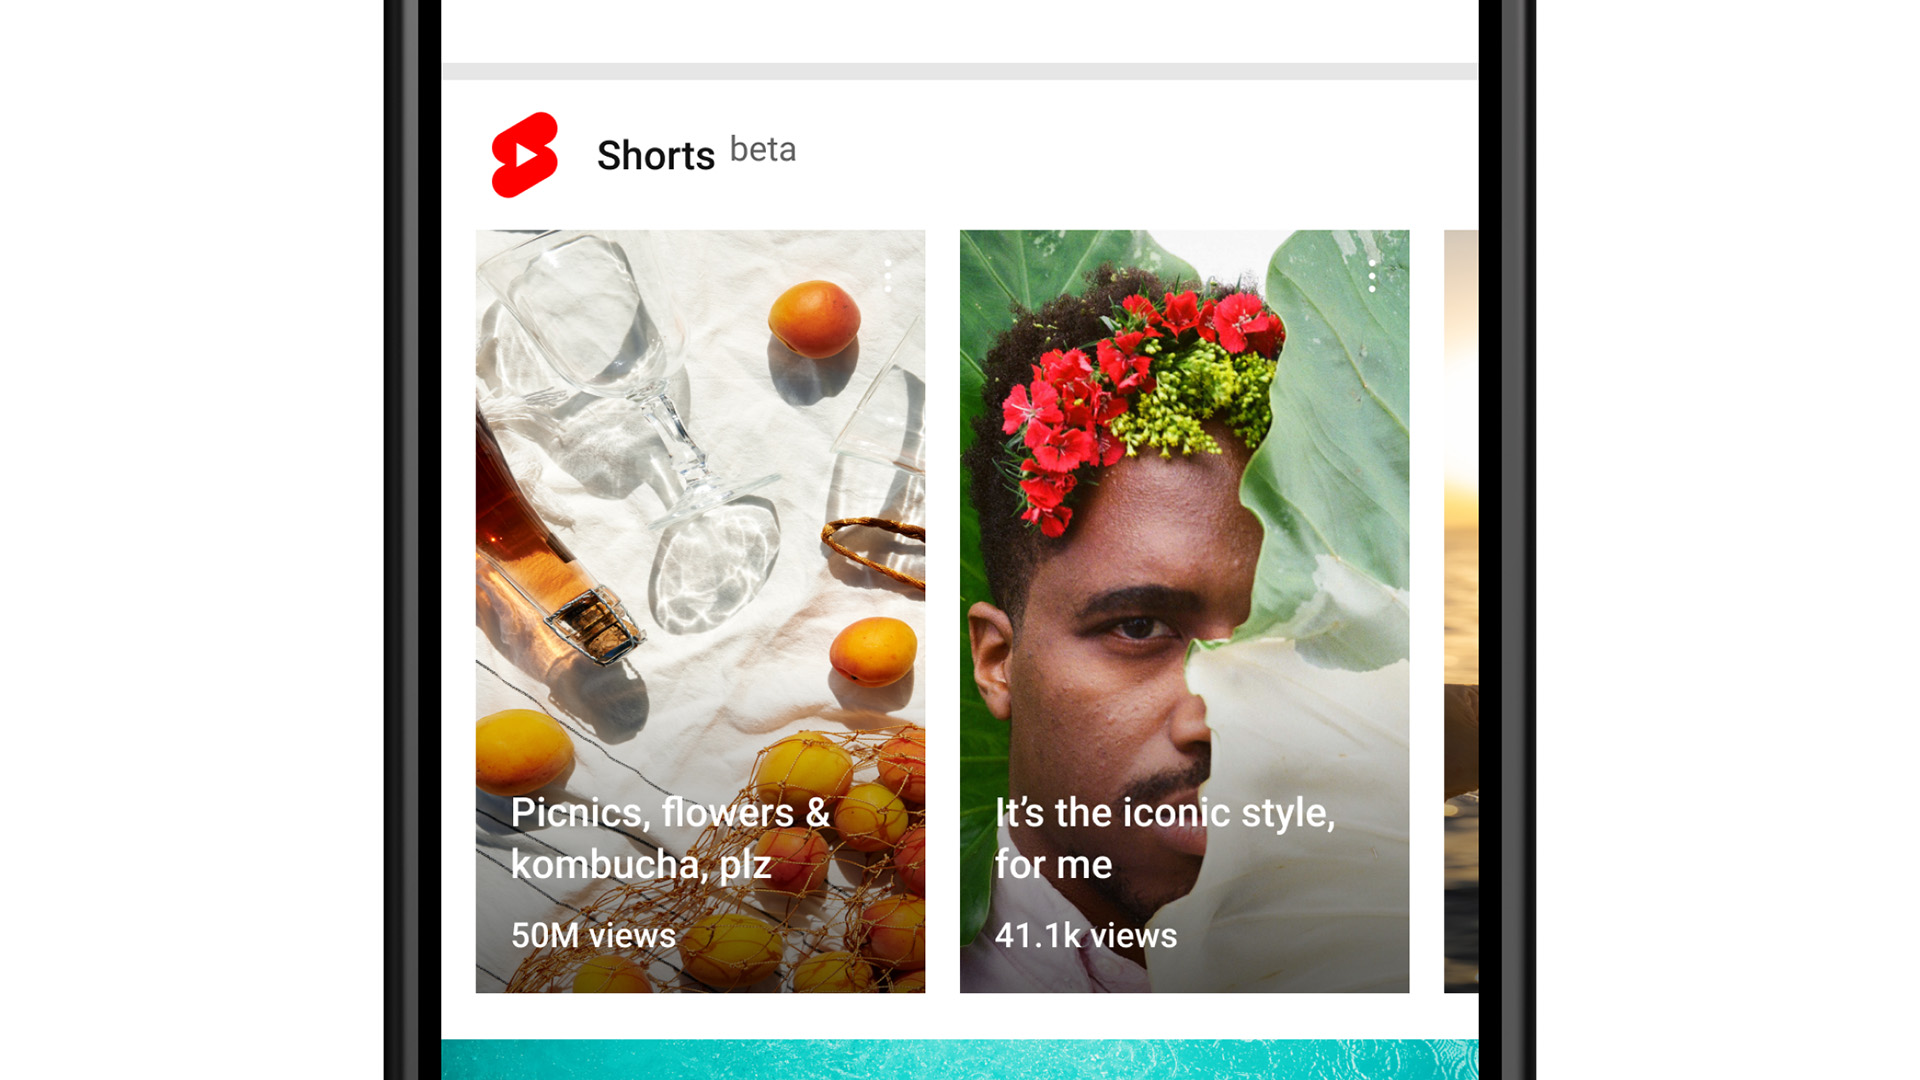 Google Rolls Out YouTube Shorts In More Than 100 Countries